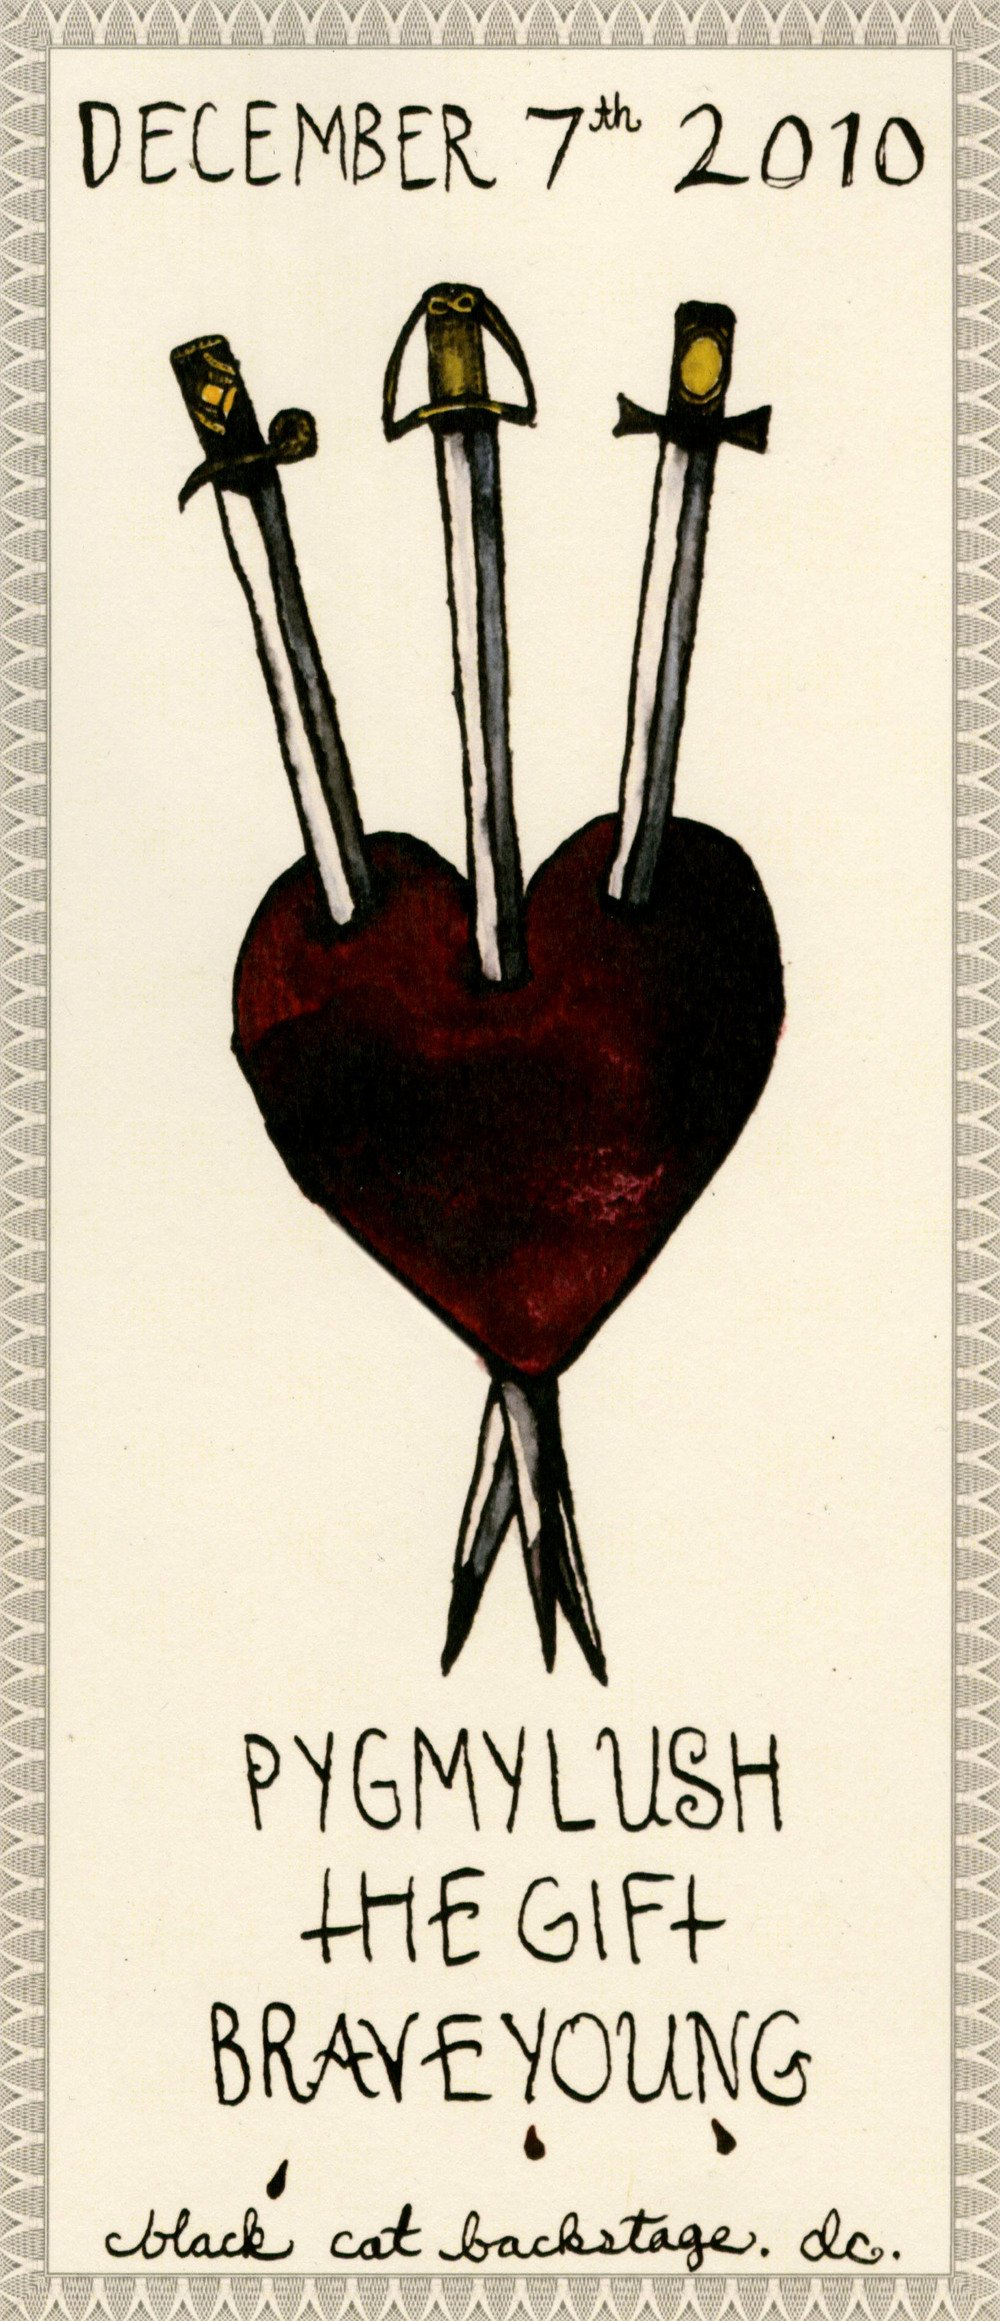 Three of swords.  Mediums: gouache, ink, wine, blood, & digital printing.  I like how this turned out but really regret having the border so dark and close in. It feels claustrophobic and would have looked a lot better with a light border further off. Learning not to overwork stuff, embrace negative space, and allow for breathing room is an ongoing process (in art + life...)